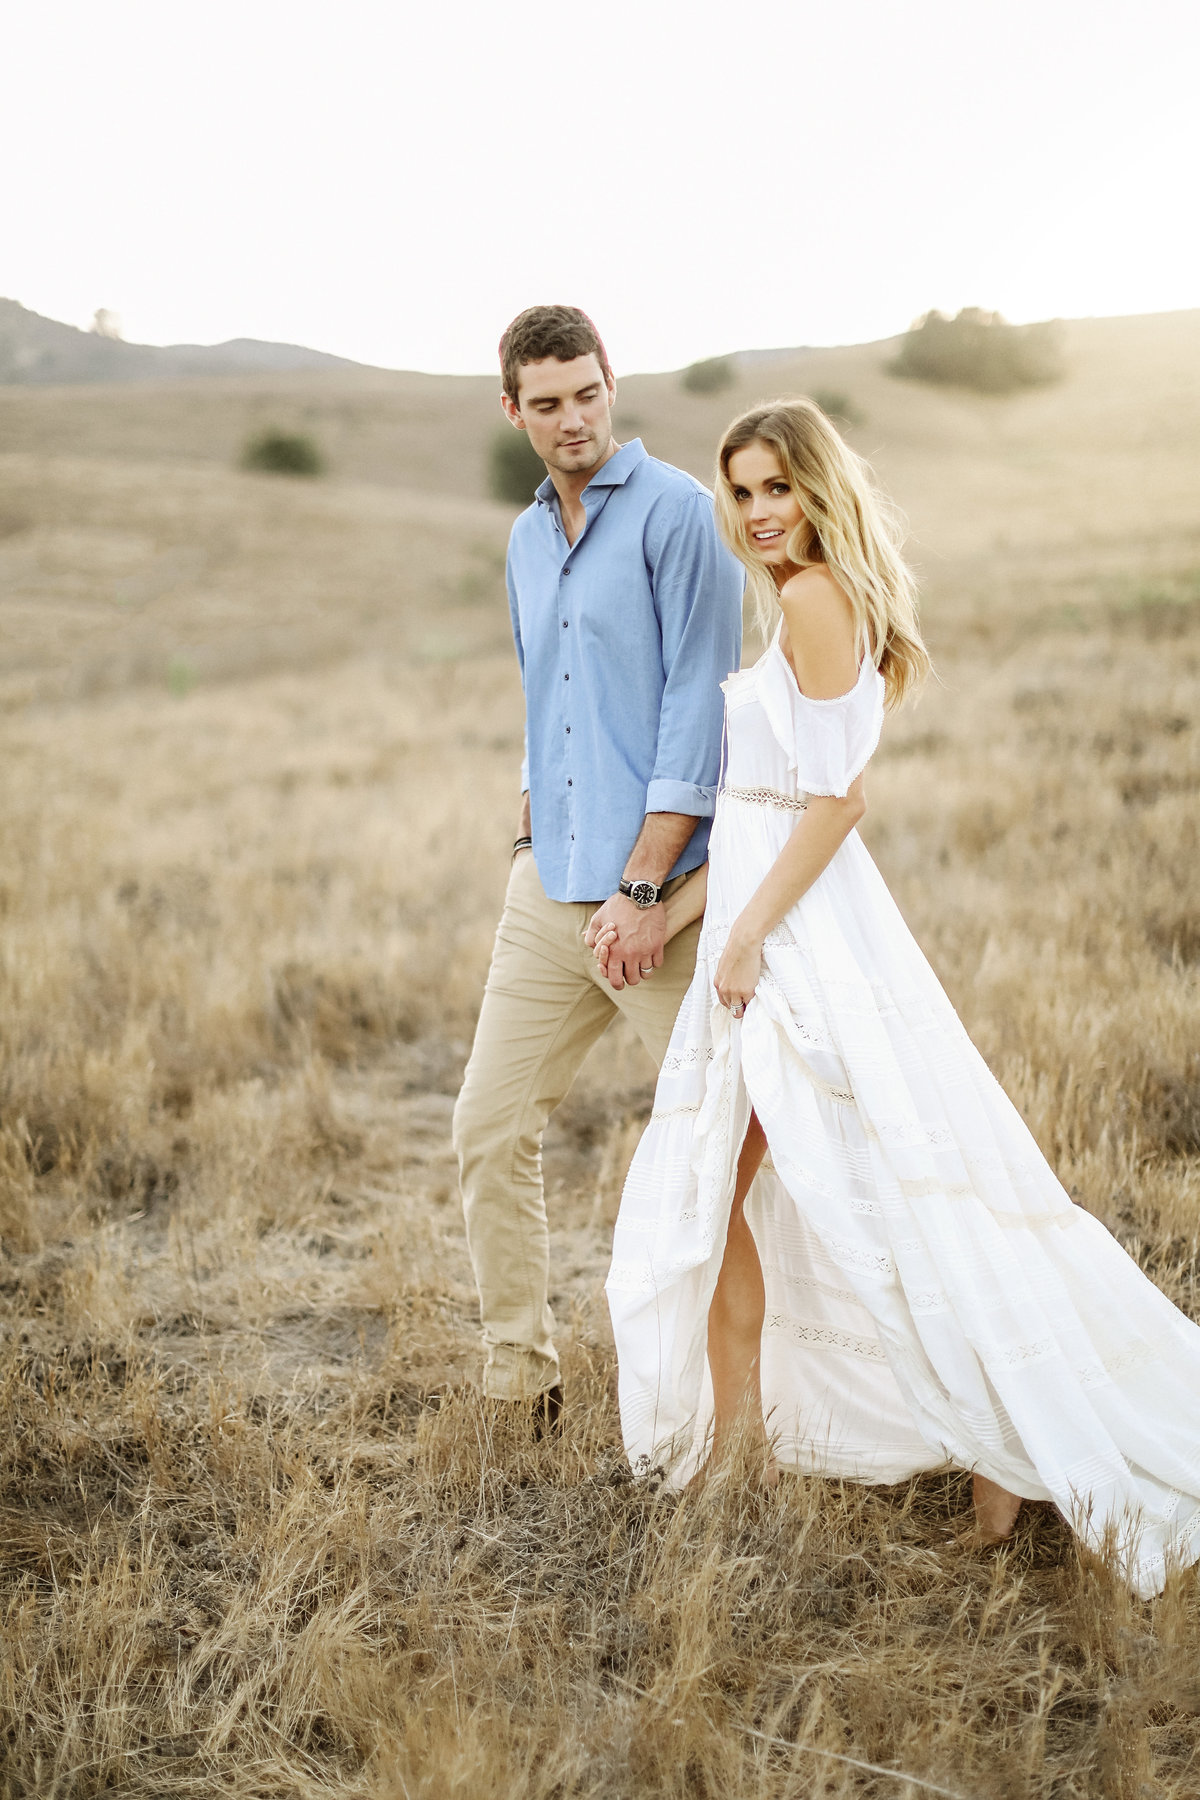 Rustic_Engagement_Session_033